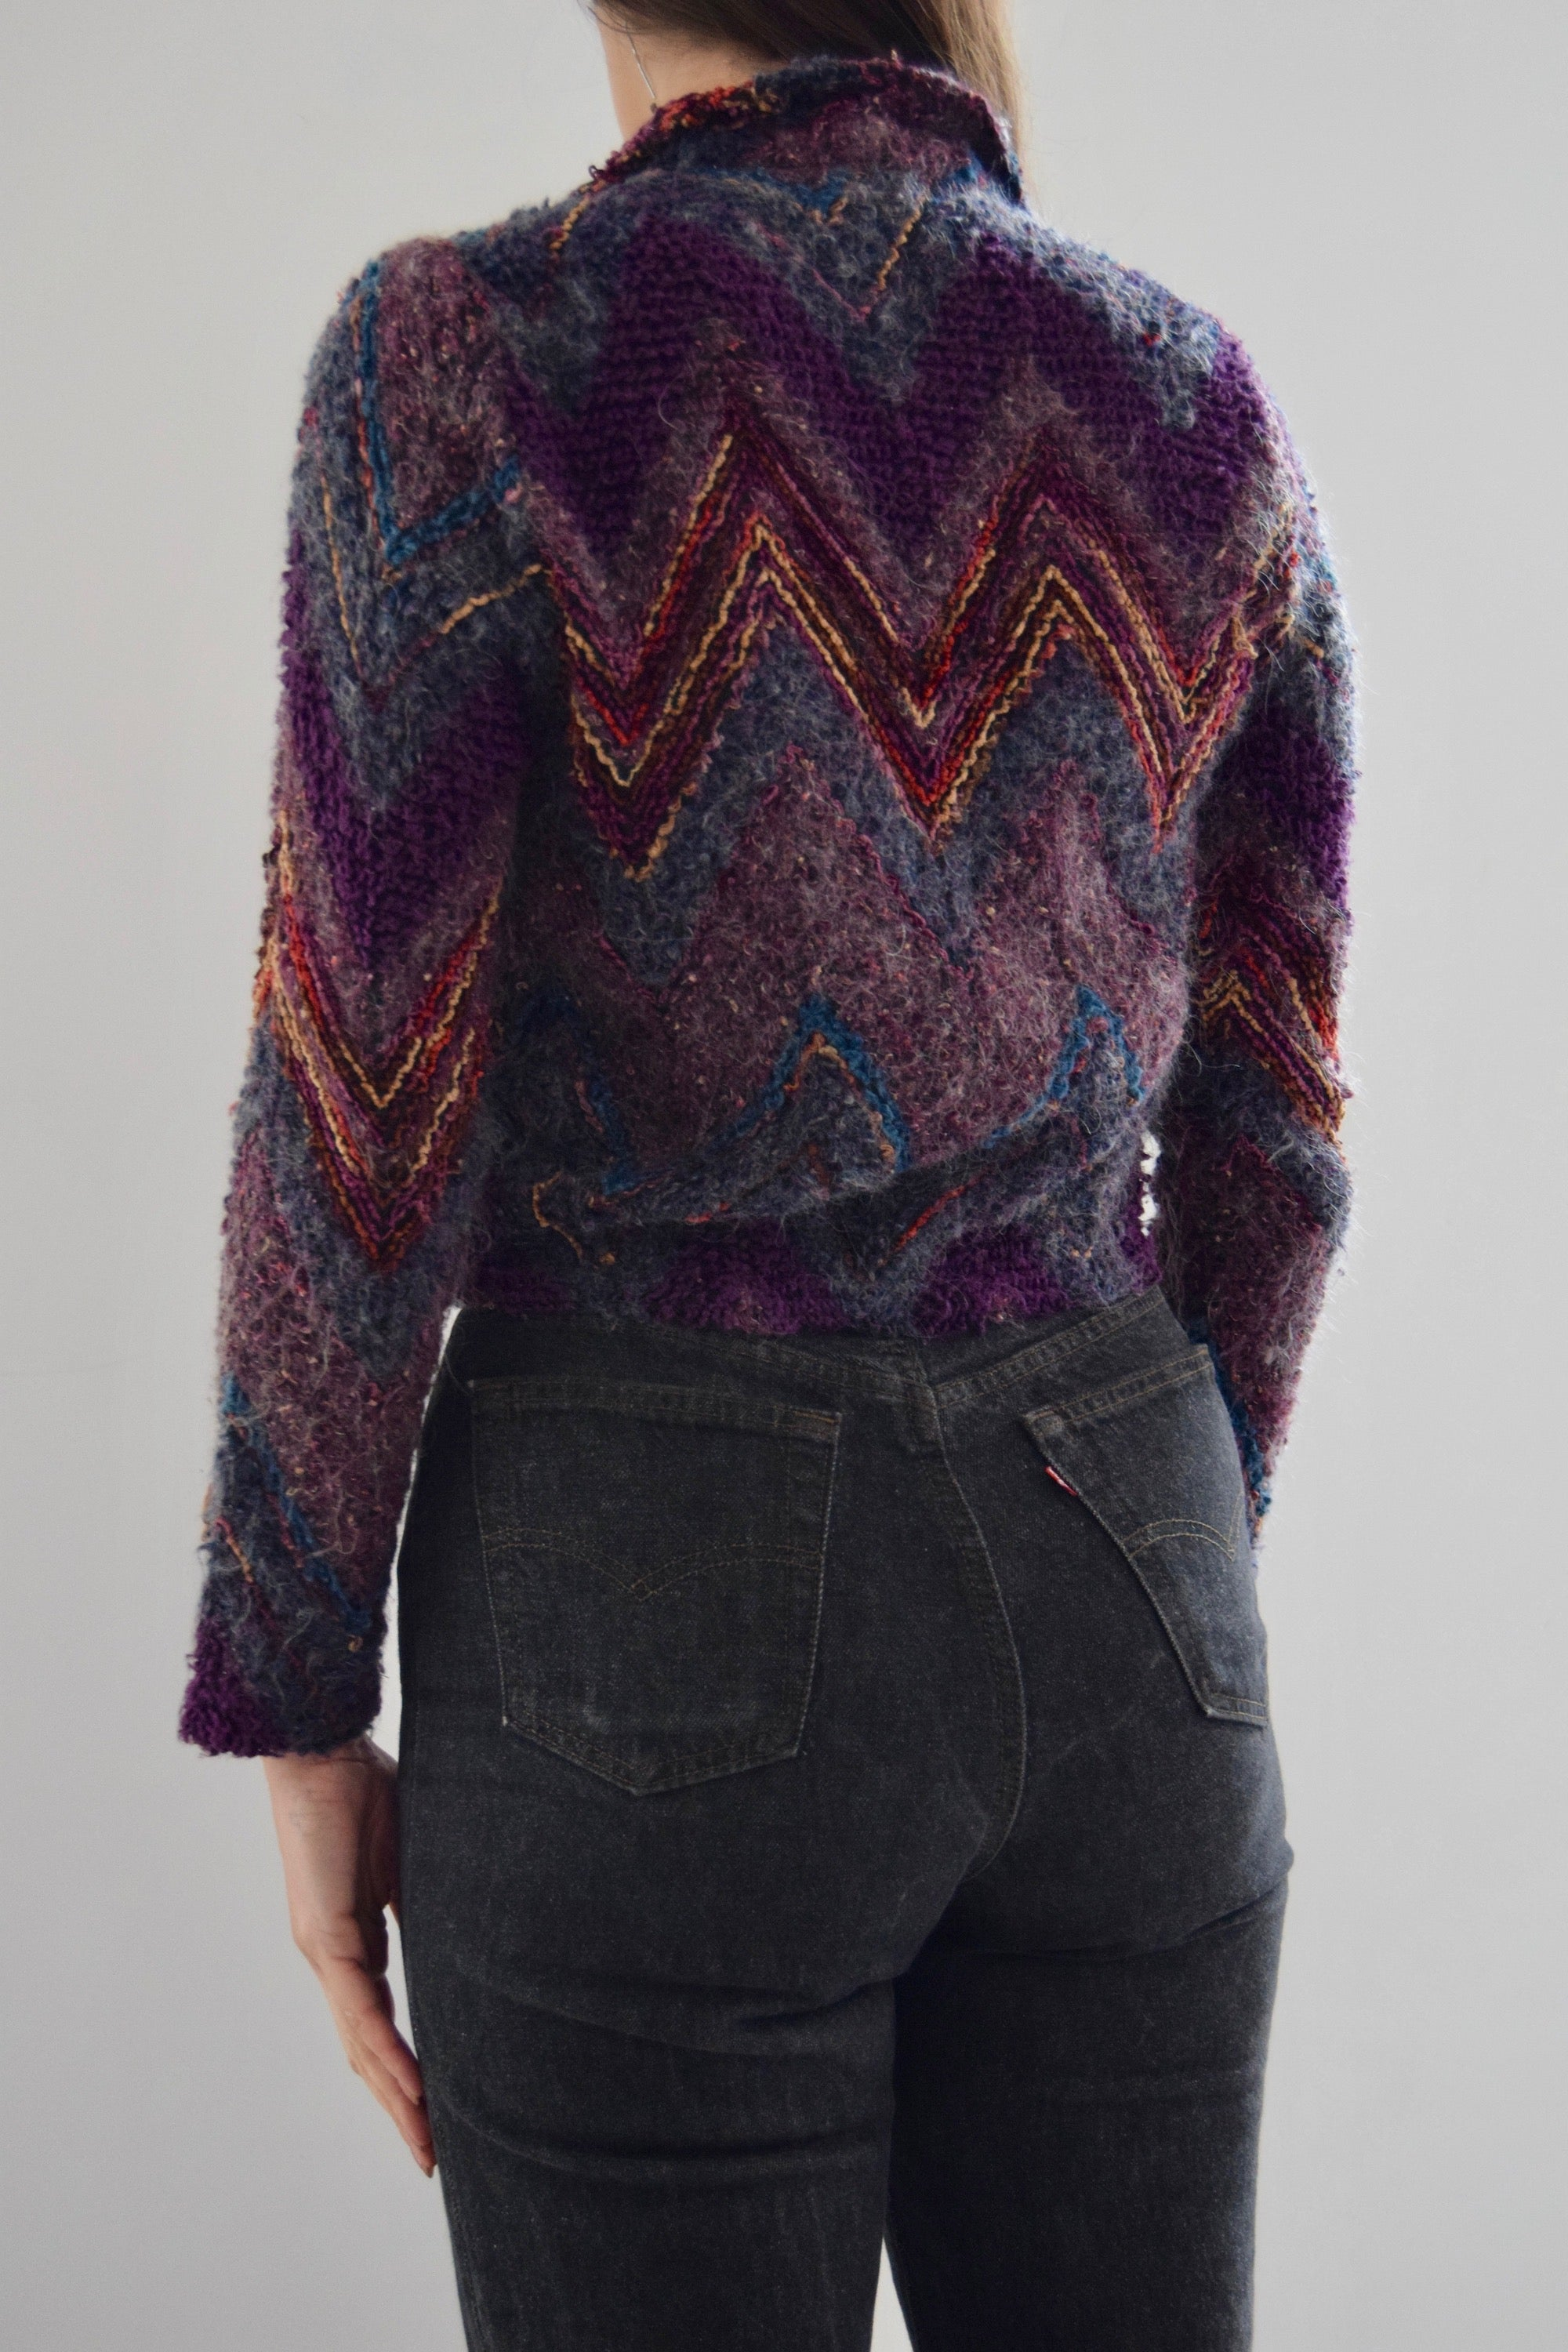 Vintage Zig Zag Purple Texture Collared Cardigan